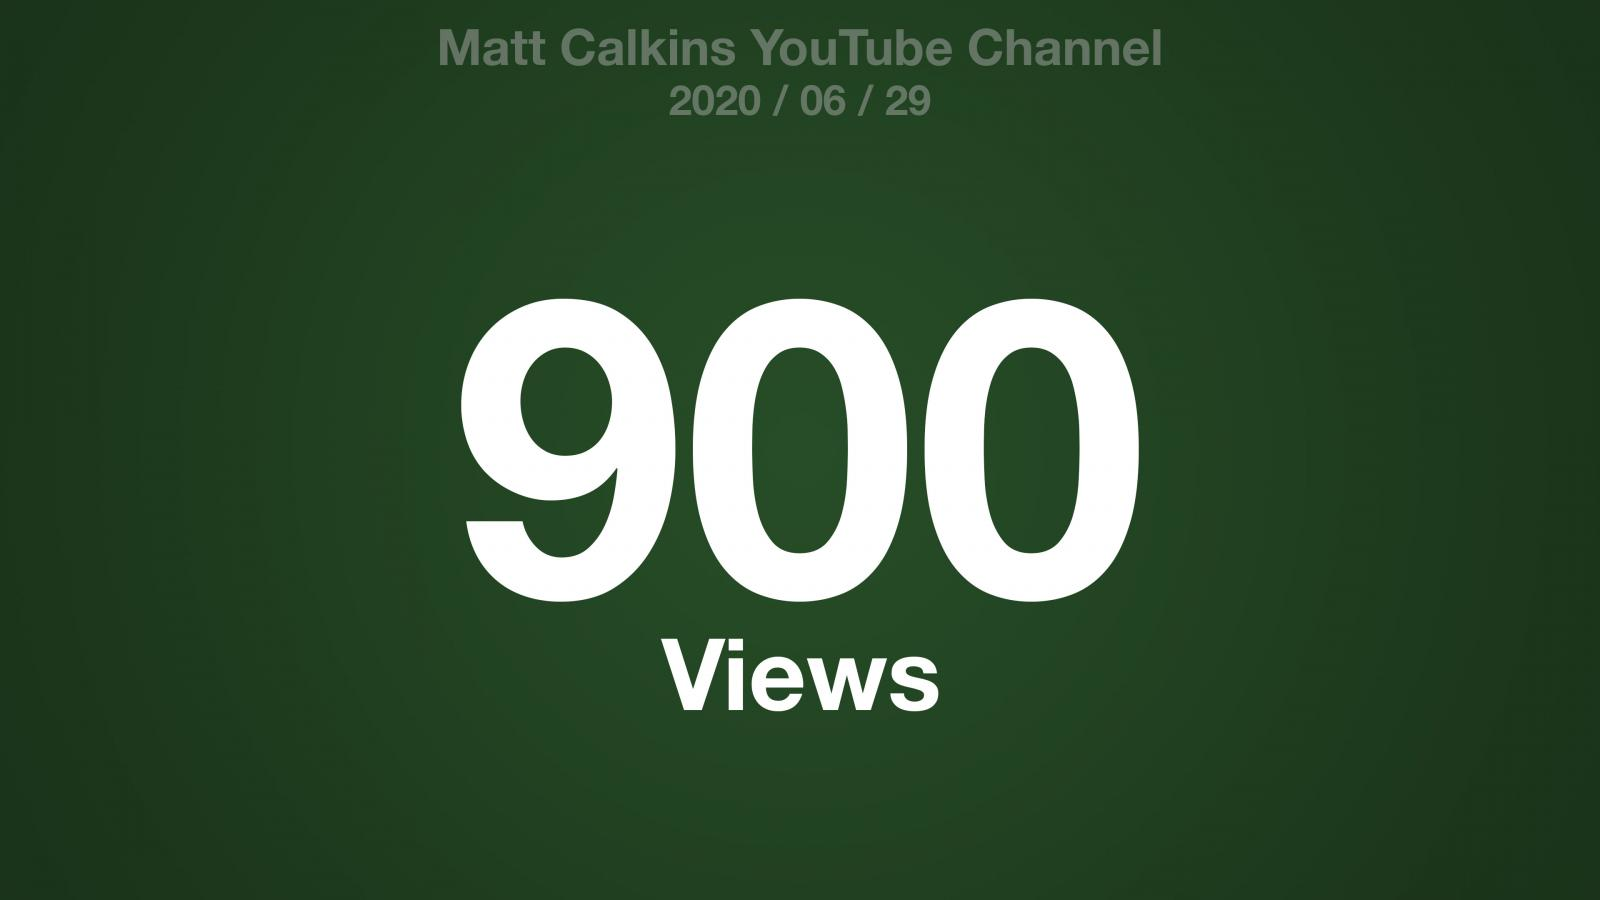 Matt Calkins YouTube Channel 2020/06/29 900 Views